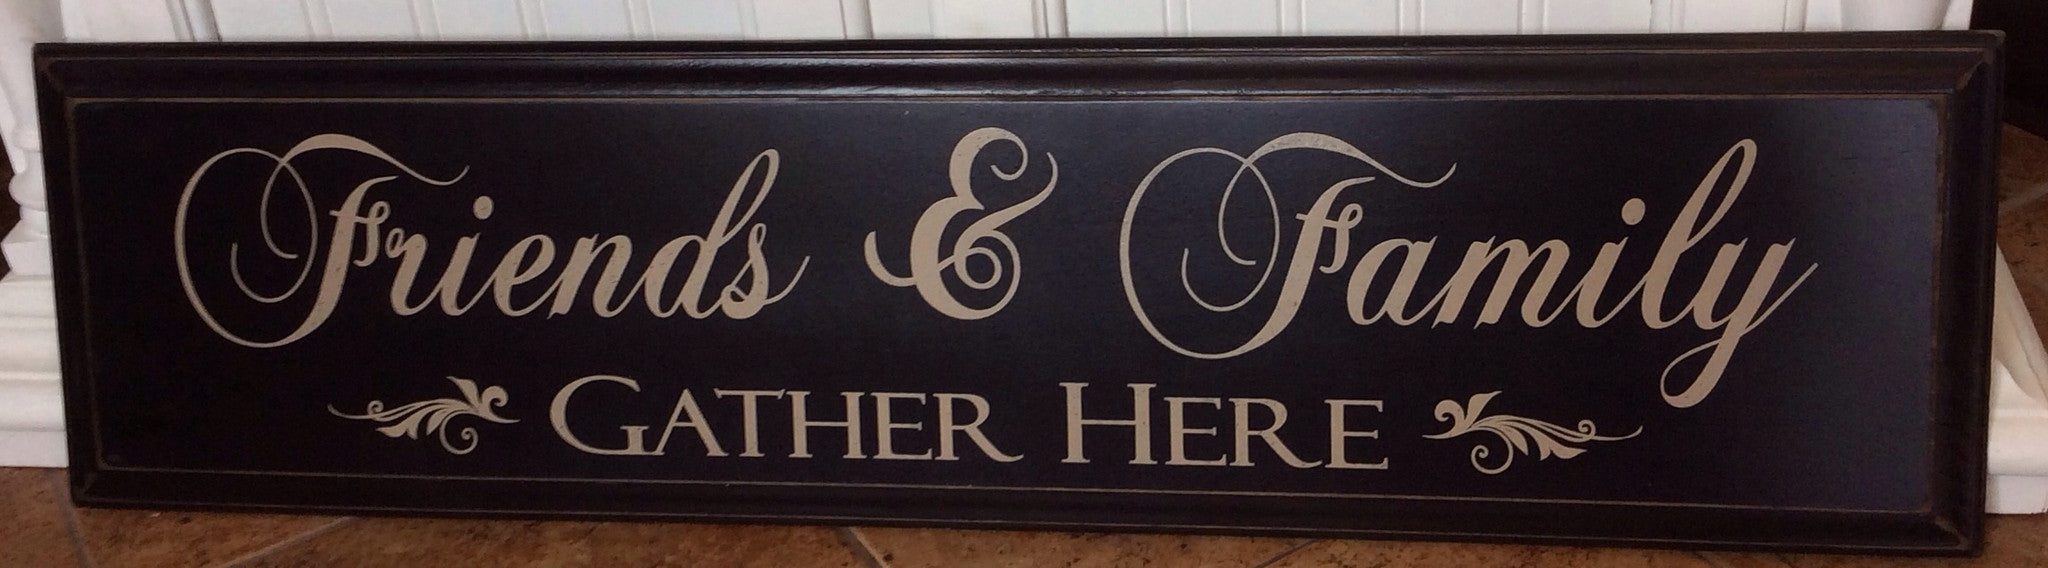 "Friends and Family Gather Here- Painted Wood Sign with Routered Edge- 9 1/4"" x 35 3/4""- Black with Cream Letters"